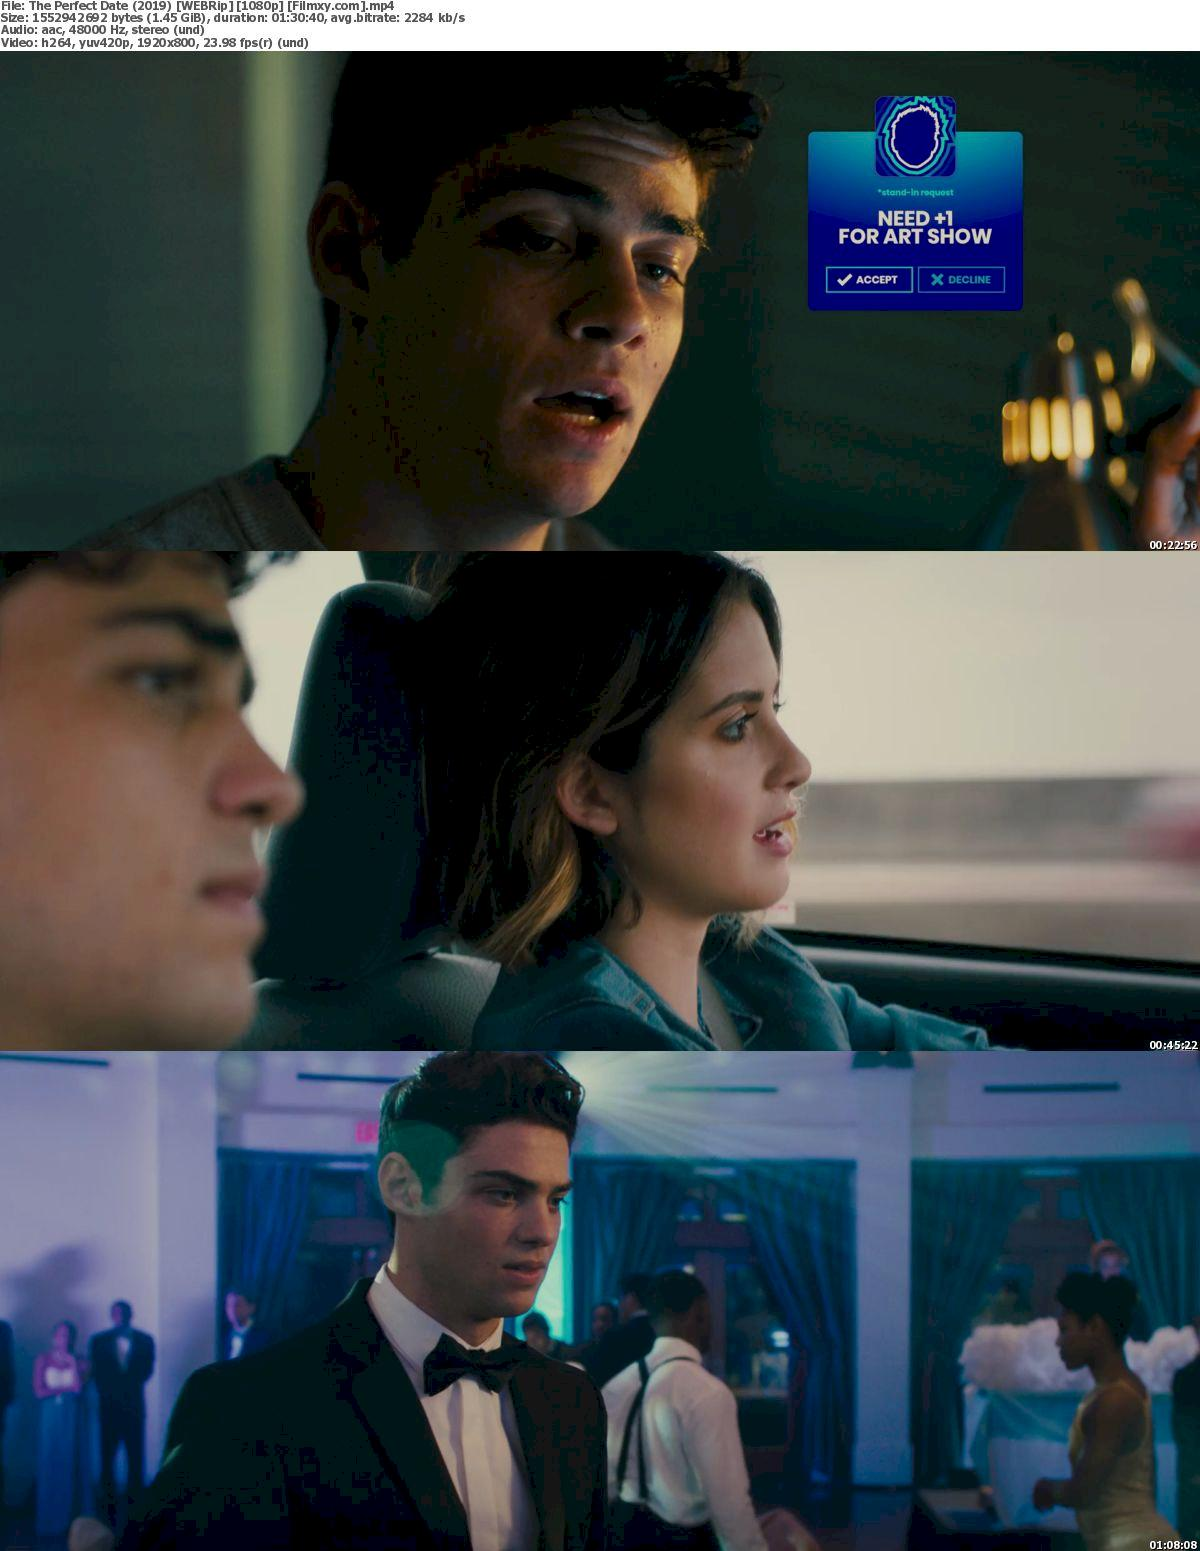 The Perfect Date (2019) [720p & 1080p] WEB-Rip Free Movie Watch Online & Download 1080p Screenshot